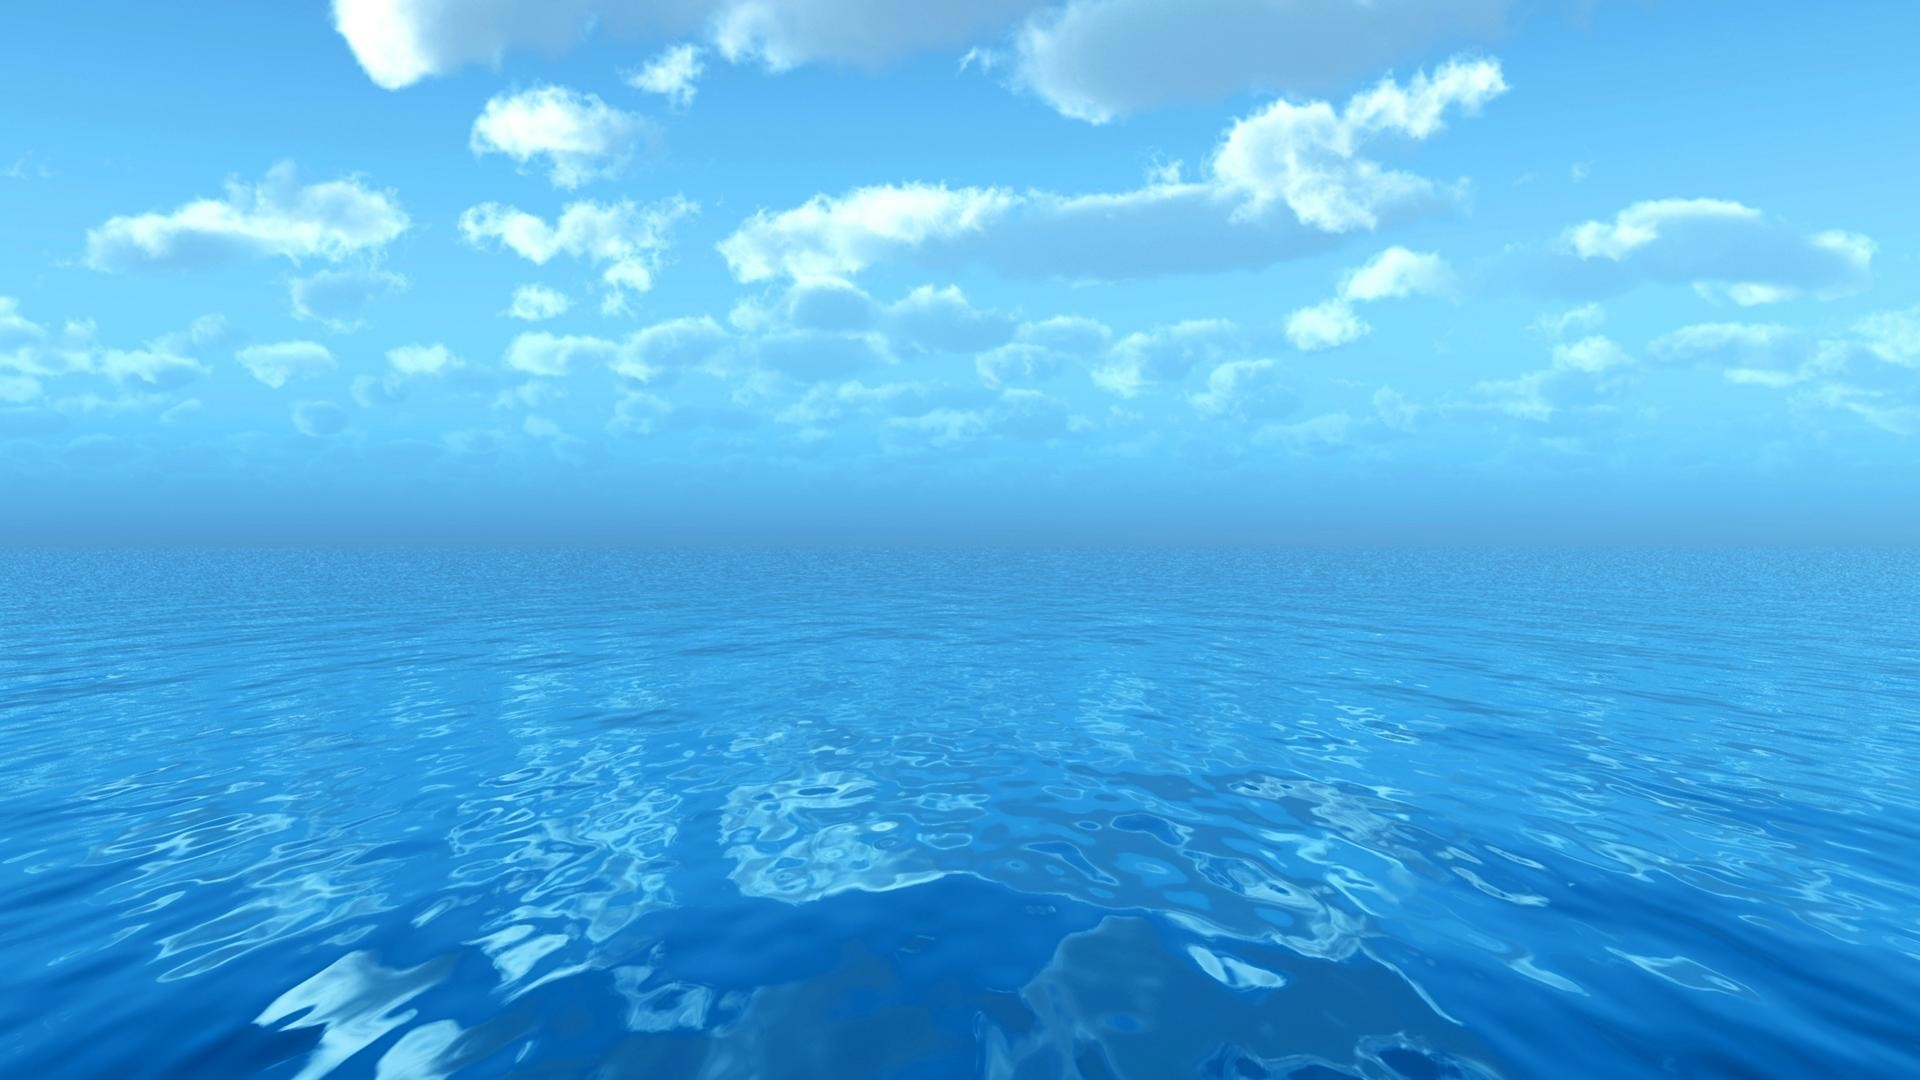 1920x1080 High Resolution Ocean Wallpaper 1920X1080 For more pictures visit http://a- sea